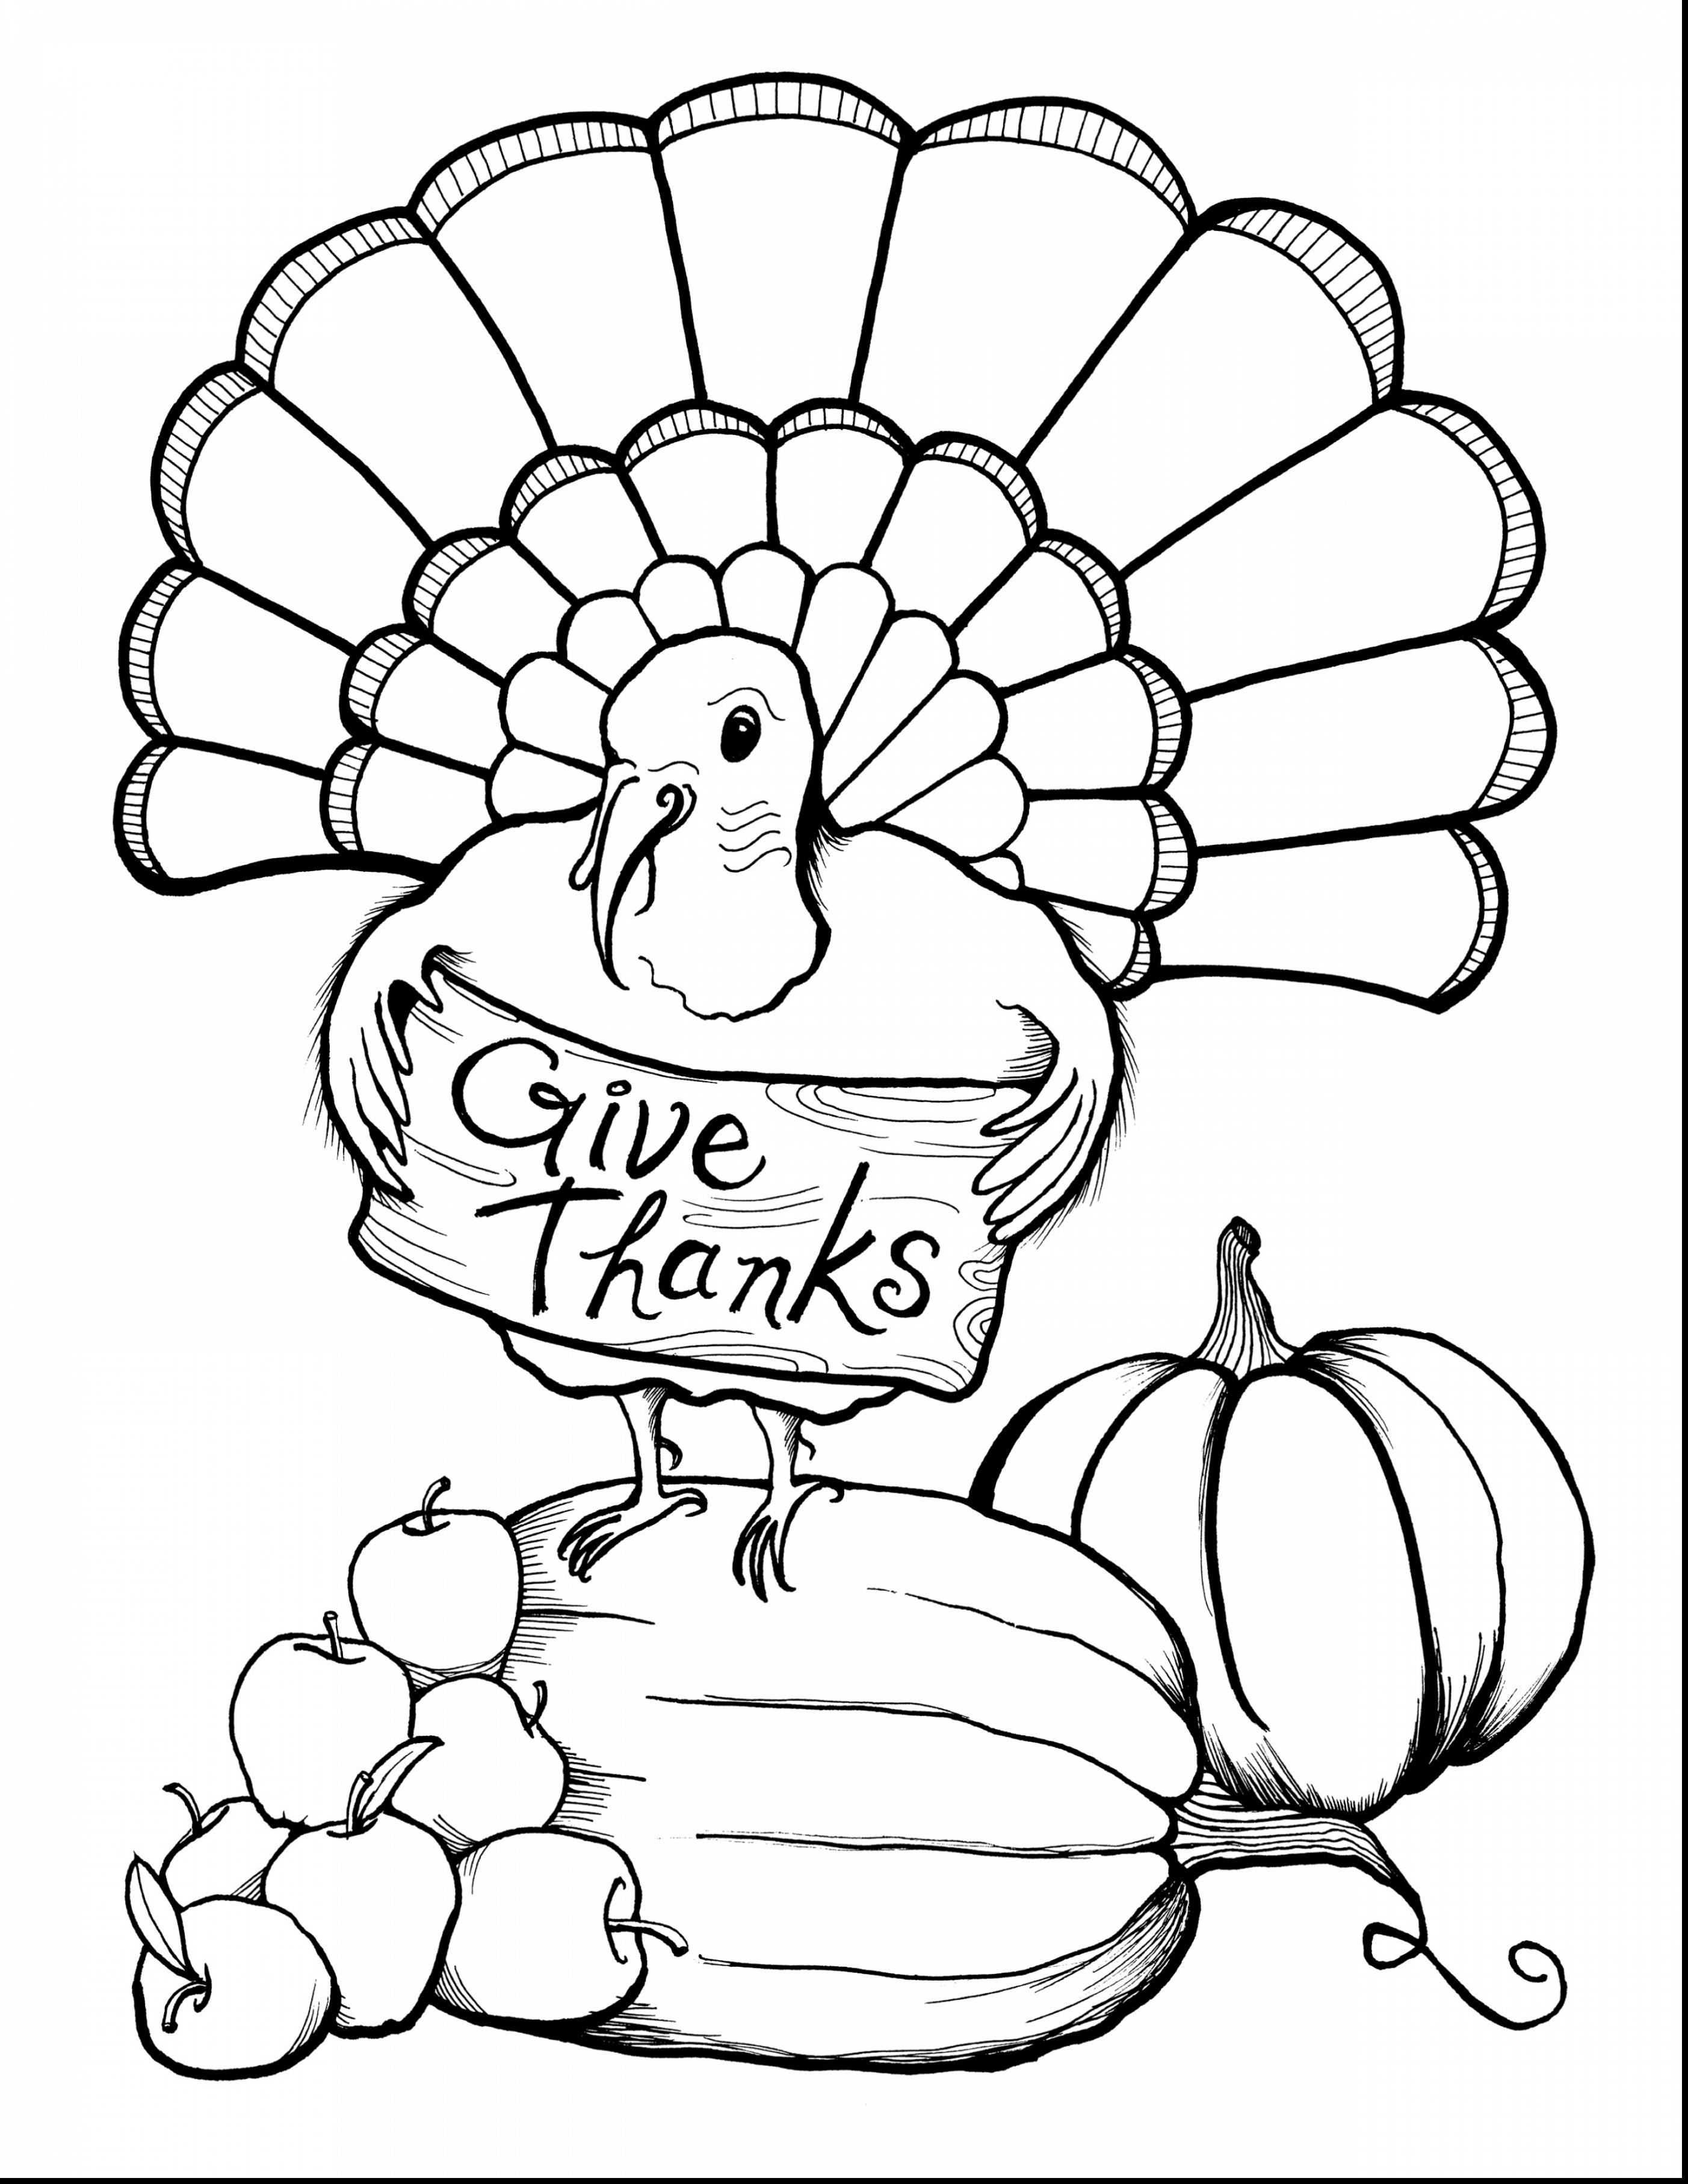 printable happy thanksgiving coloring pages Collection-Best of Printable Thanksgiving Coloring Pages Download 10 o incredible thanksgiving turkey coloring page 16-e